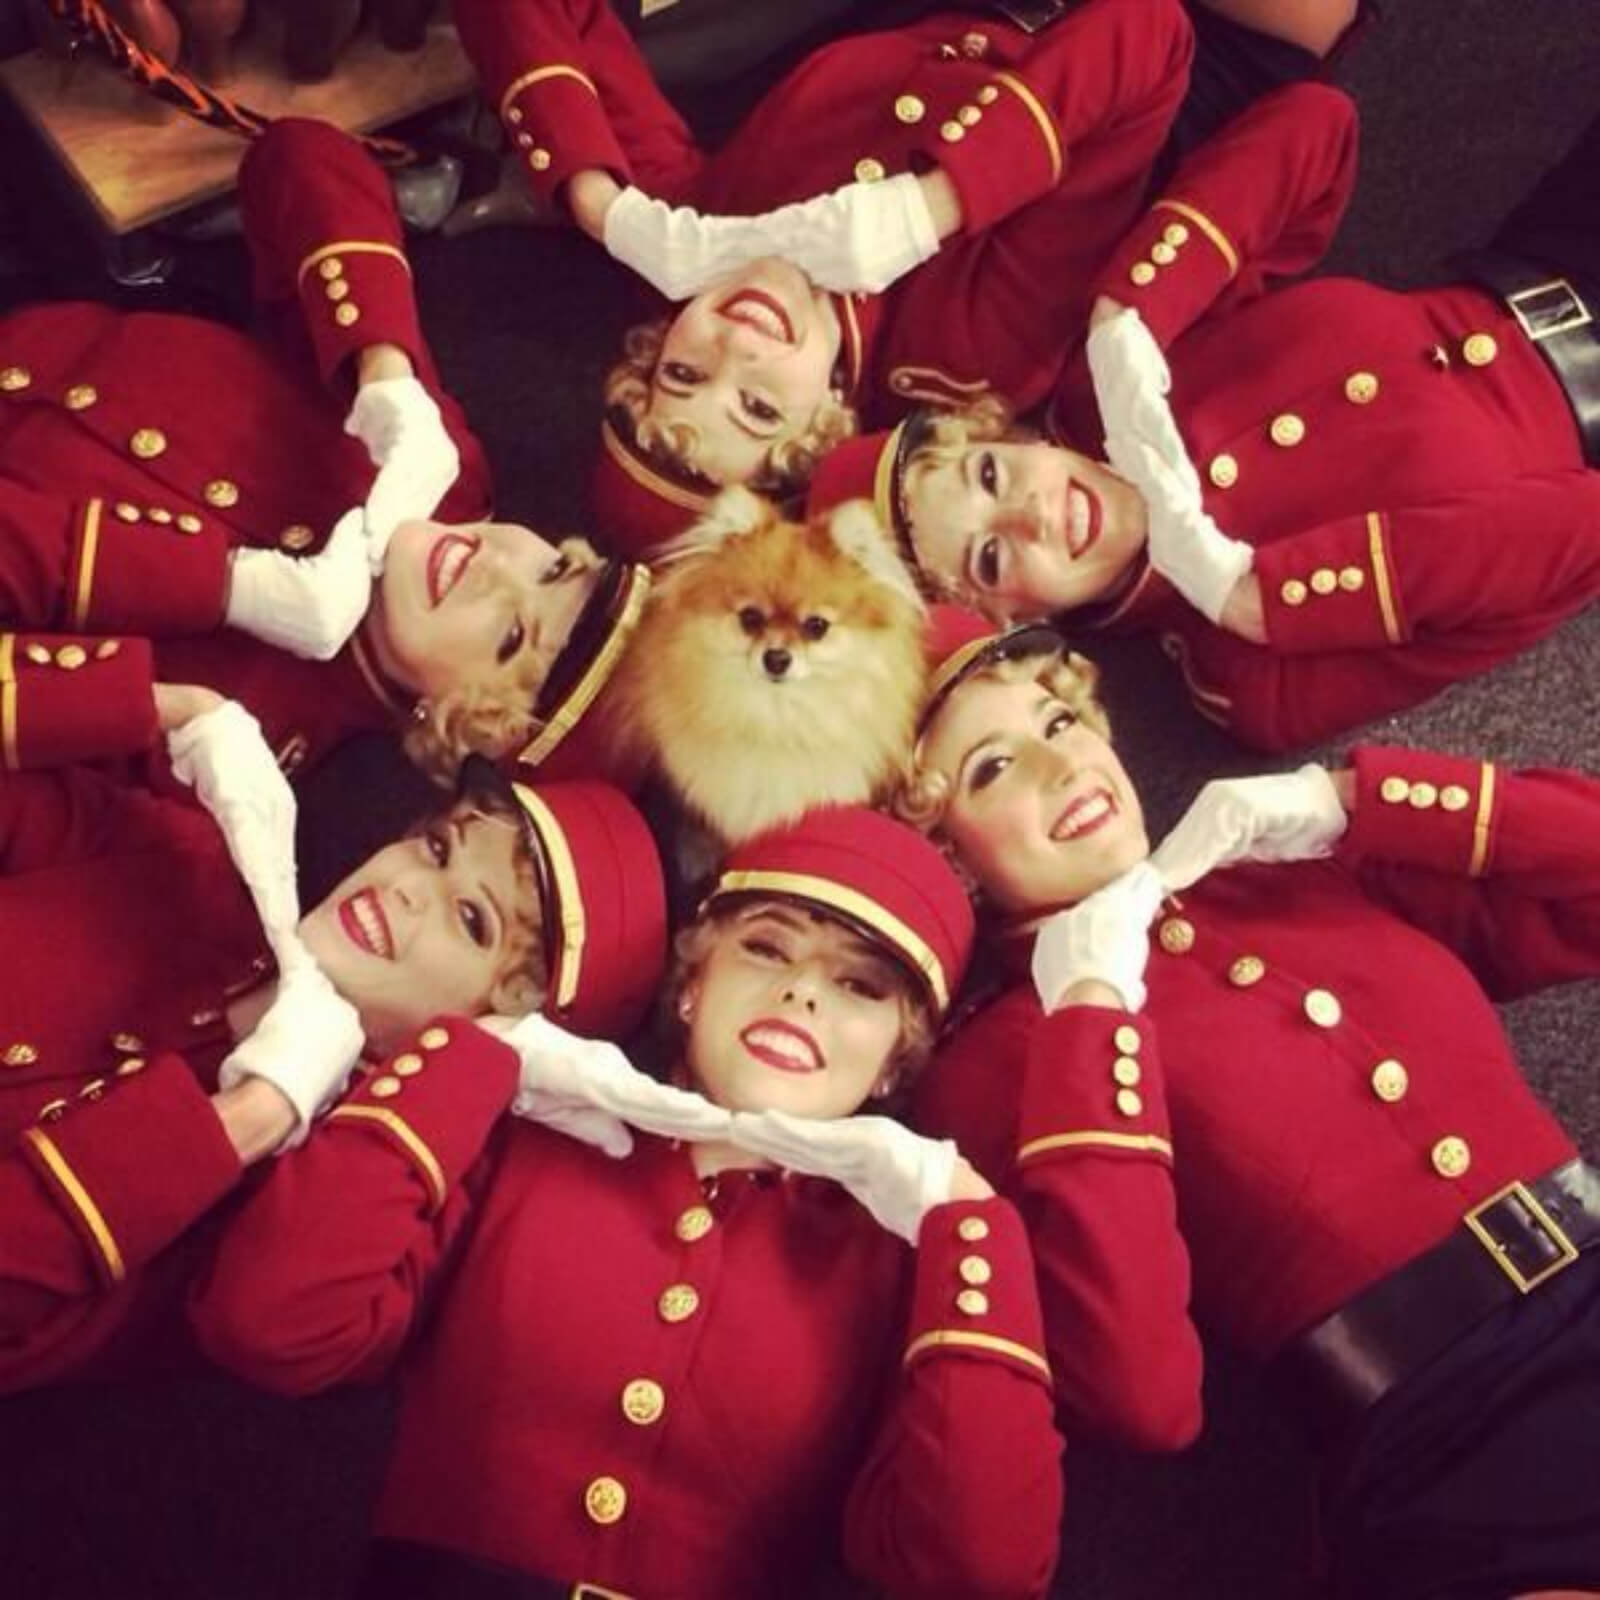 Trixie the dog is surrounded in a circle by members of the female ensemble in red costumes.